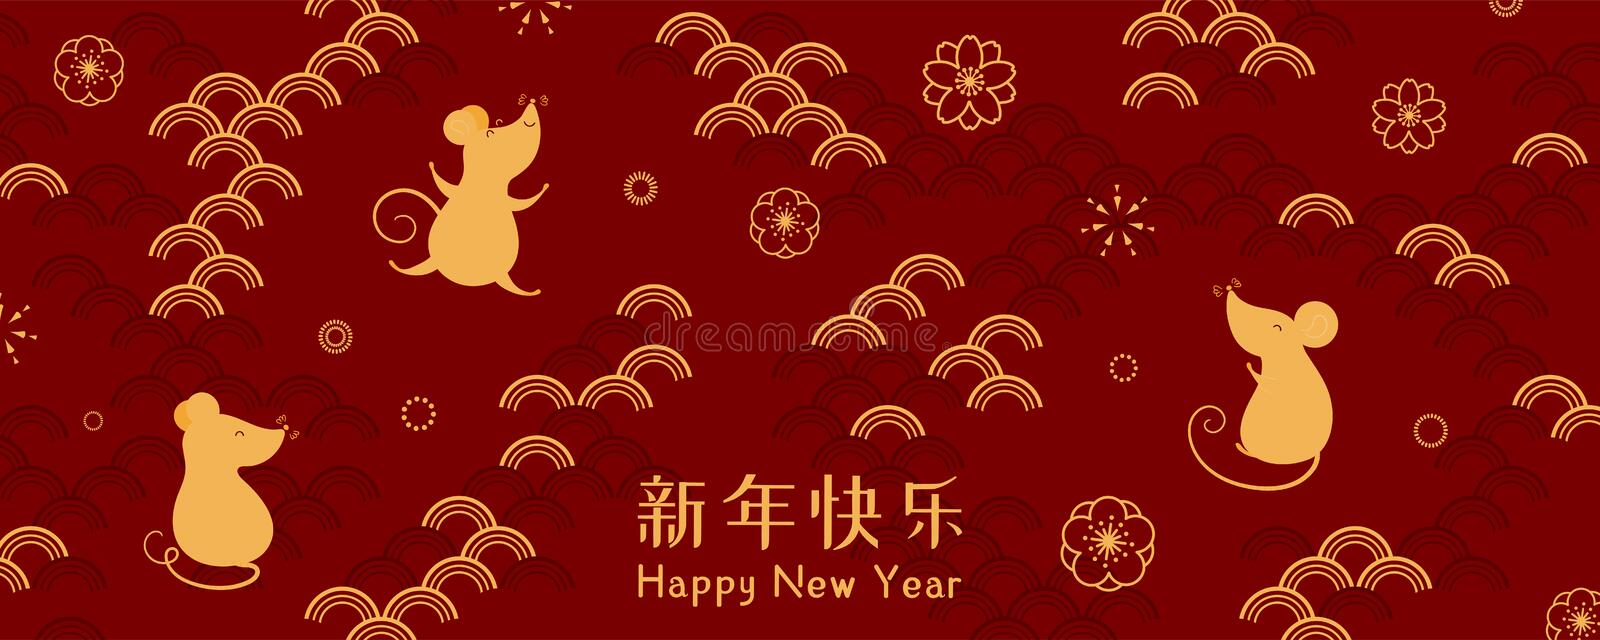 Chinese New Year banner design stock illustration